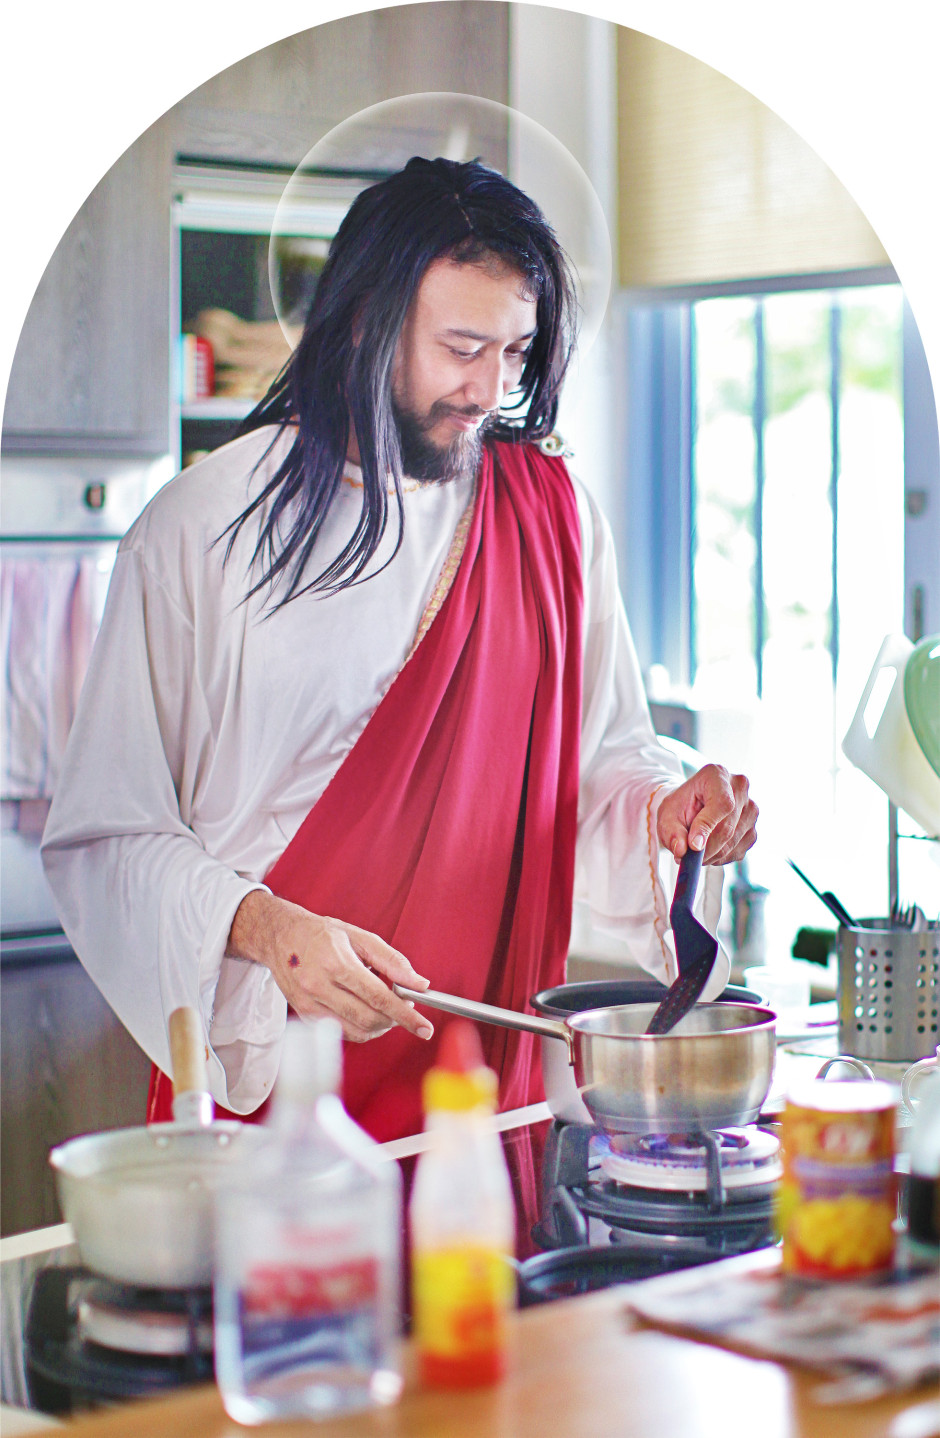 What's Cooking Jesus? (2016) by Eugene Soh